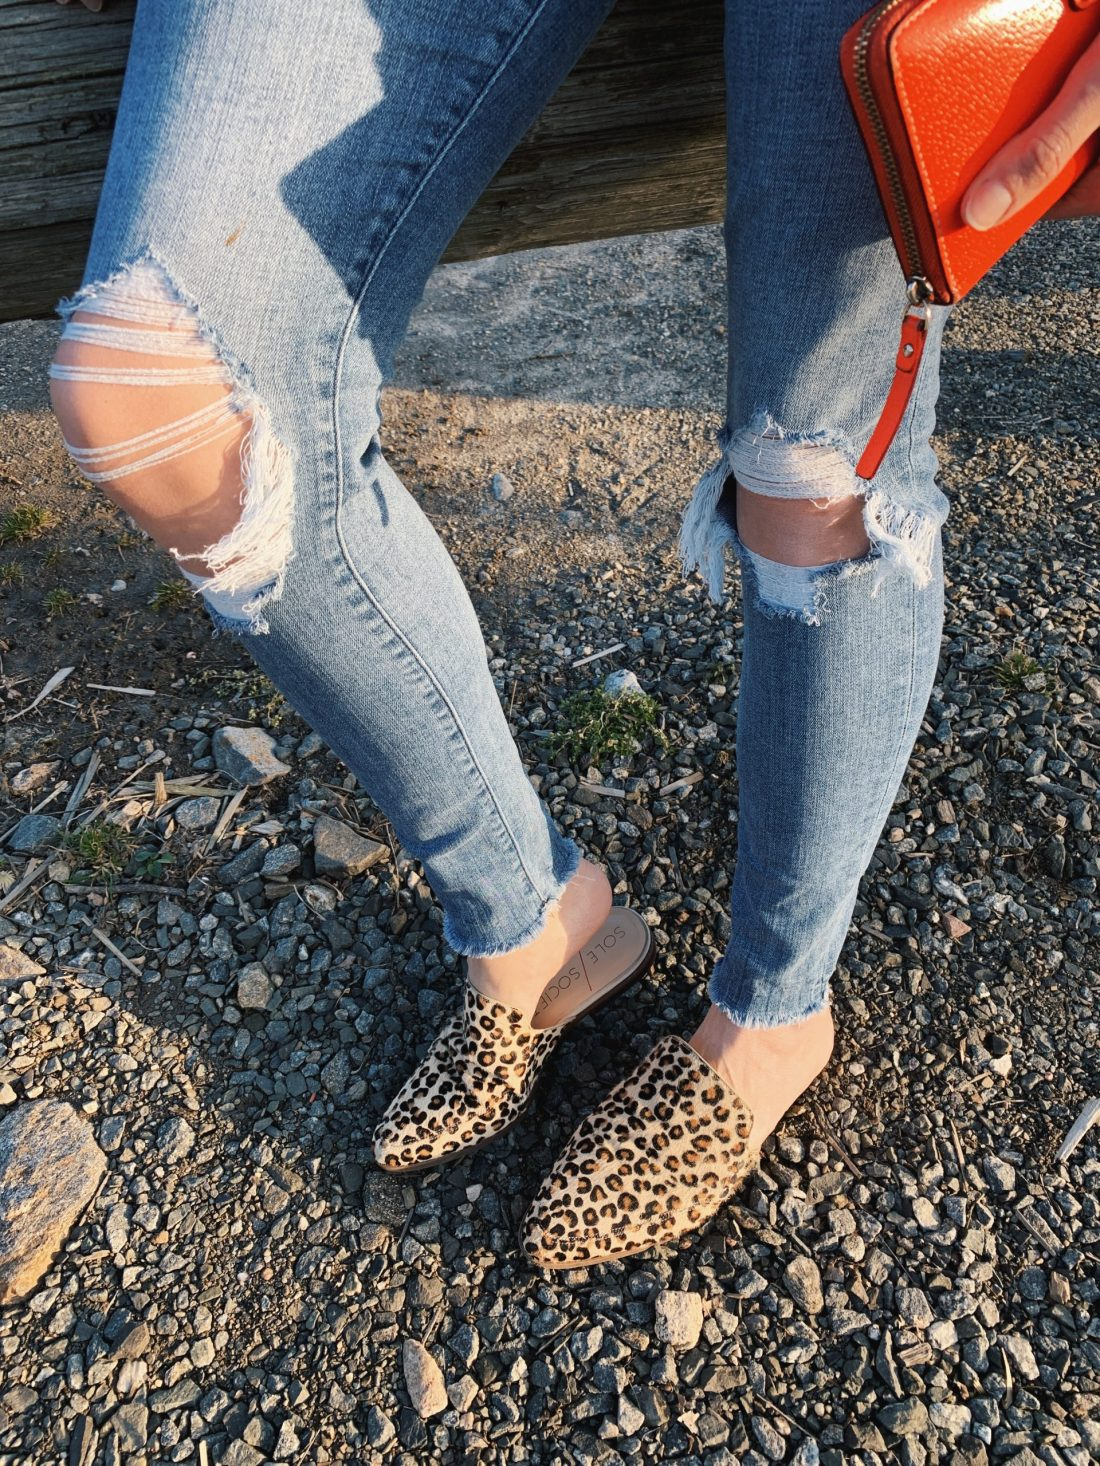 abercrombie jeans ripped knee sole society cheetah mules